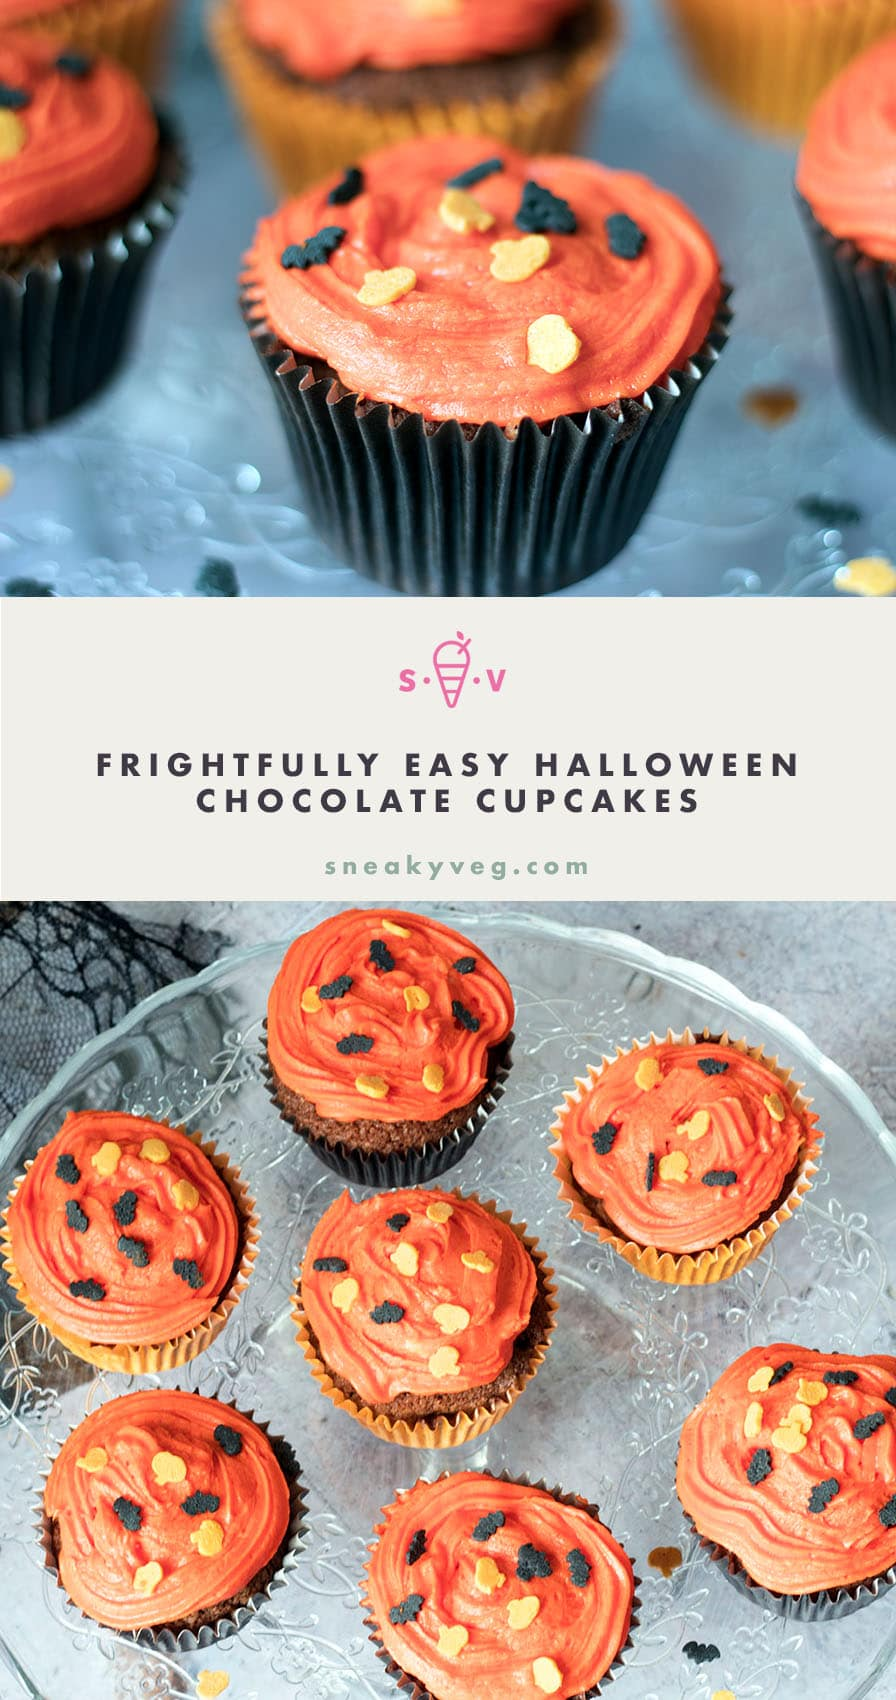 Halloween Cupcake Recipes Find Halloween cupcake ideas, from horrible to adorable. Allrecipes has easy halloween cupcake recipes and decorations to suit your party needs. Inspiration and Ideas Tips & Tricks Spider Cupcakes